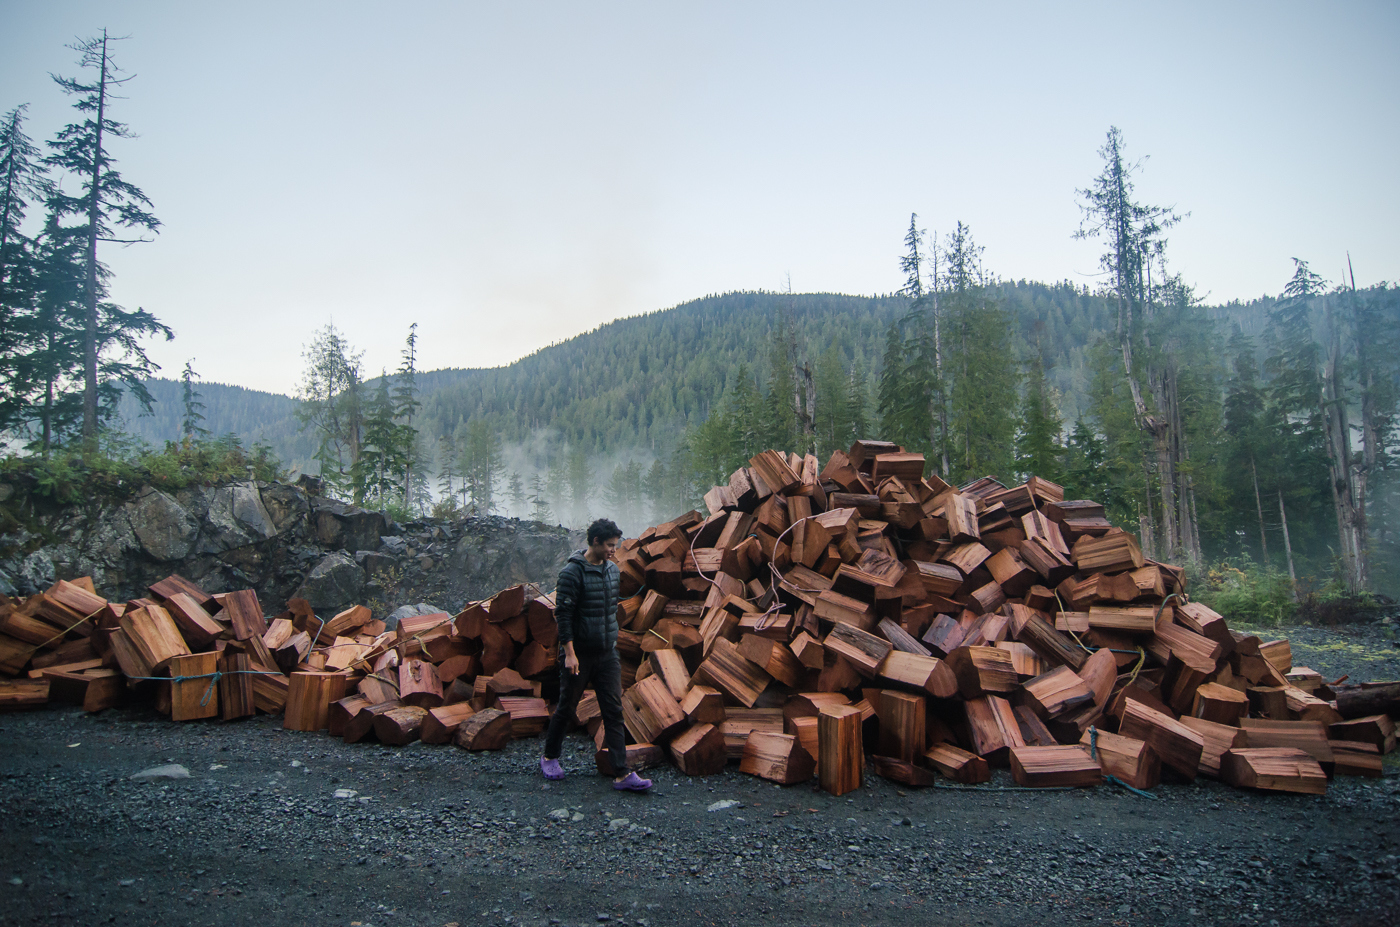 Shakeblocks in the Walbran Valley.  These blocks will be used for roofing shingles.